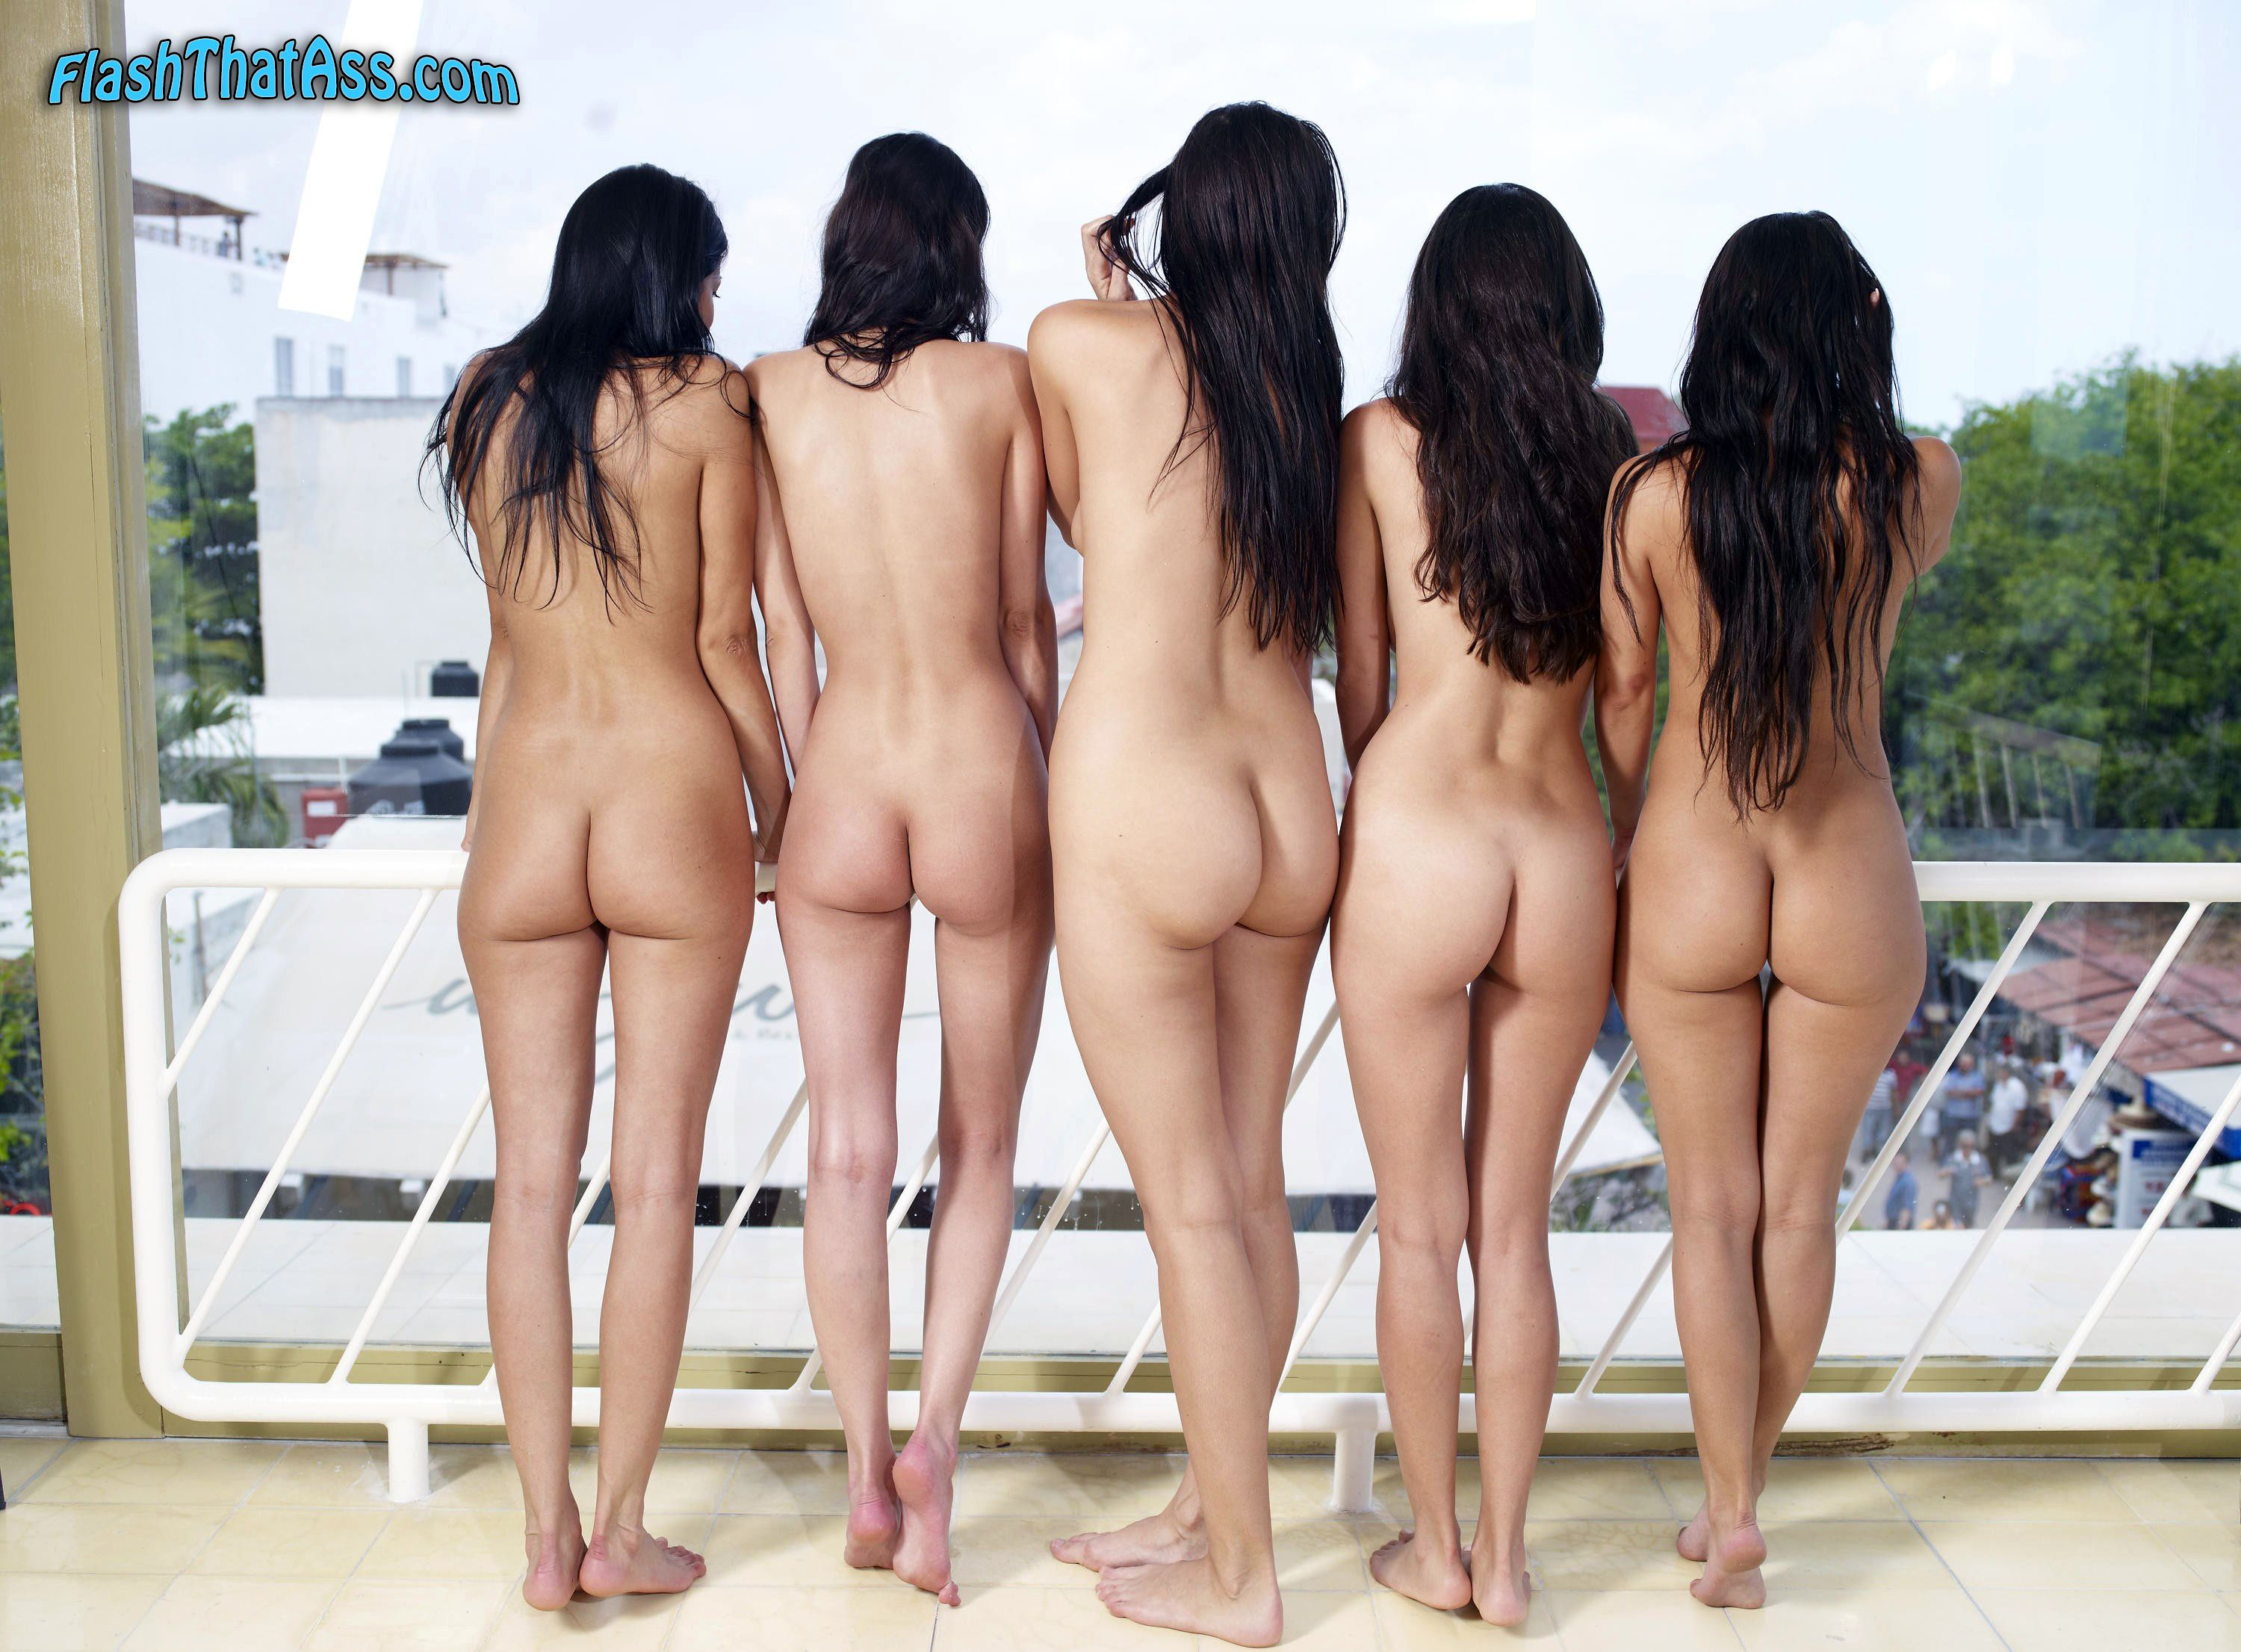 Group nude butt pics